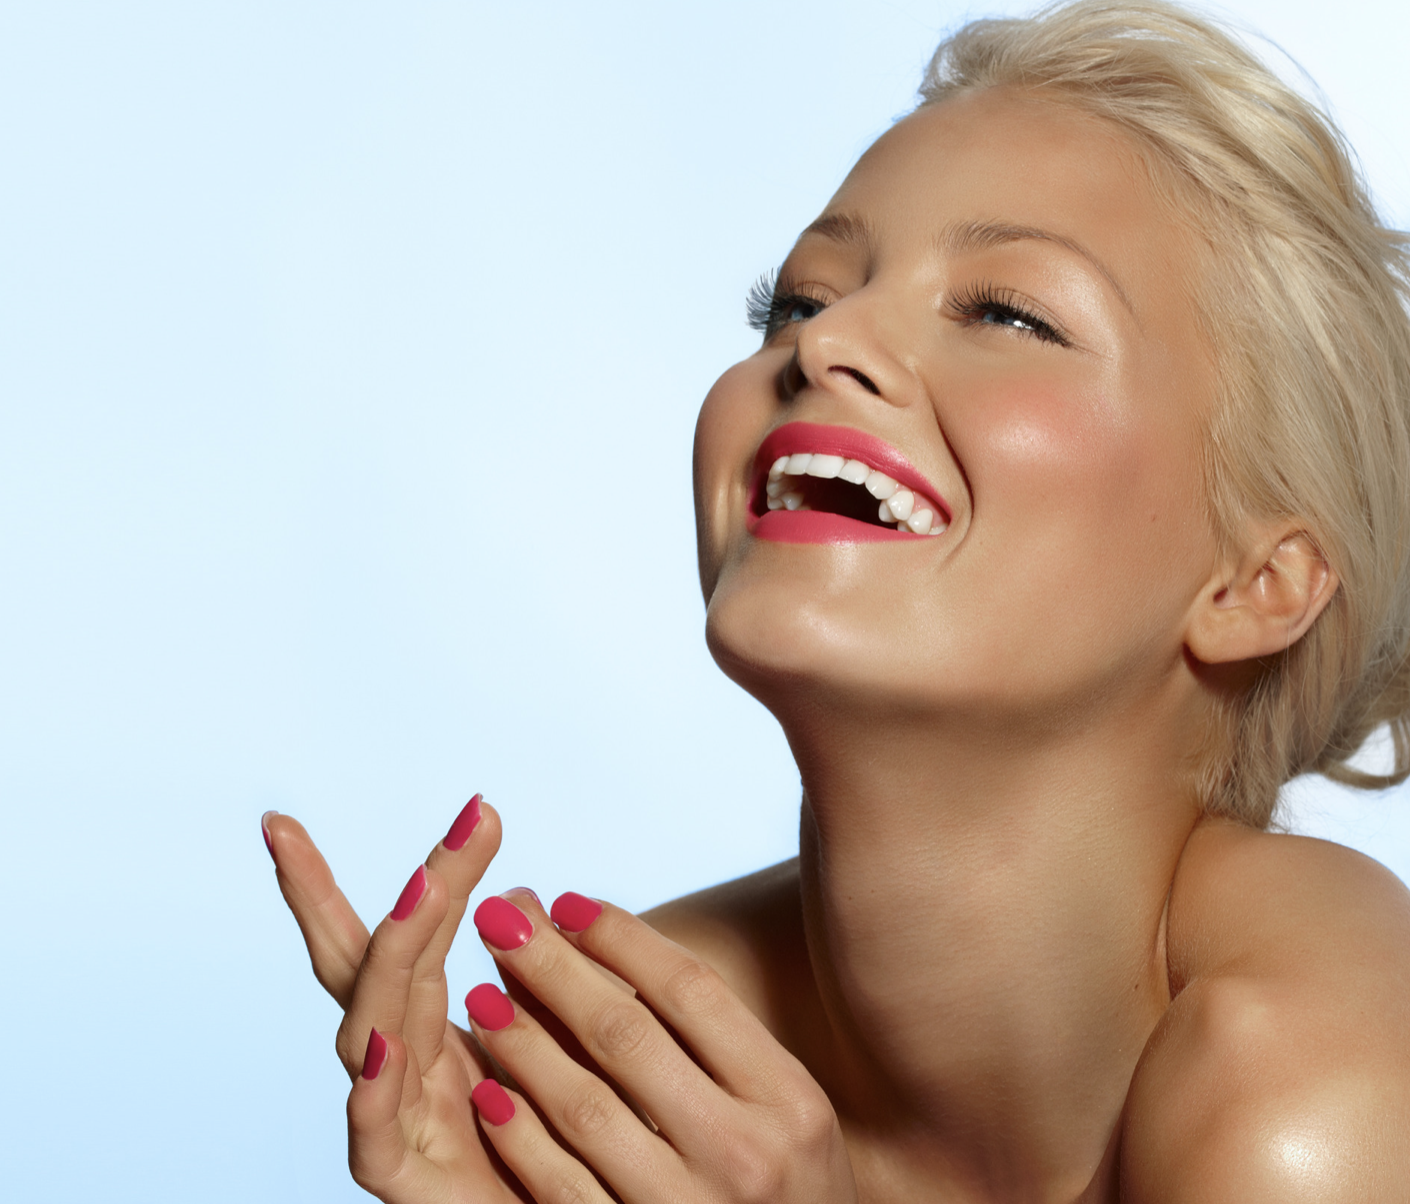 Blonde girl with red nails laughing